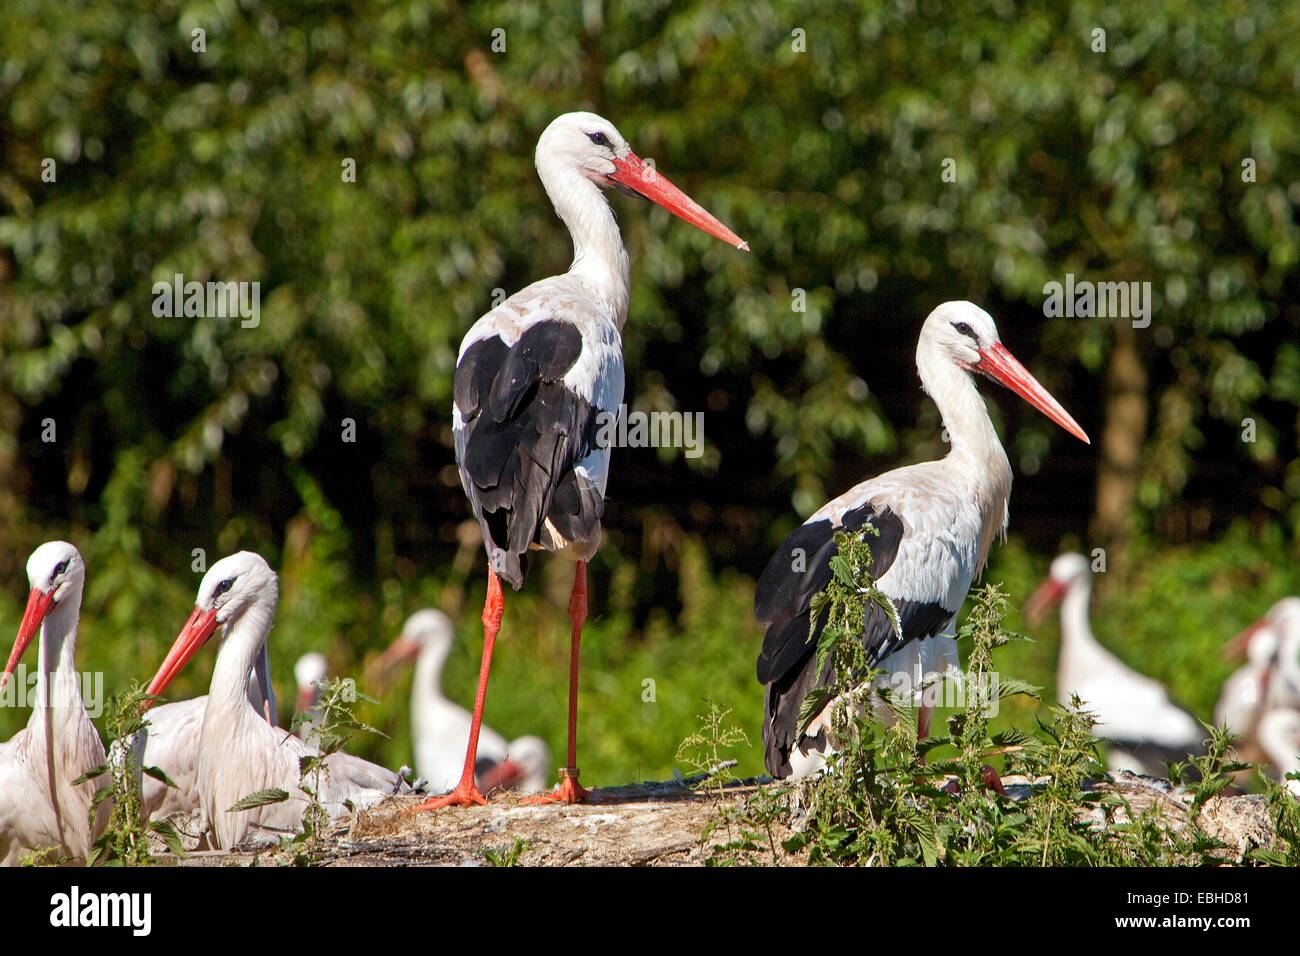 white stork (Ciconia ciconia), several storks in a meadow, Germany, North Rhine-Westphalia - Stock Image